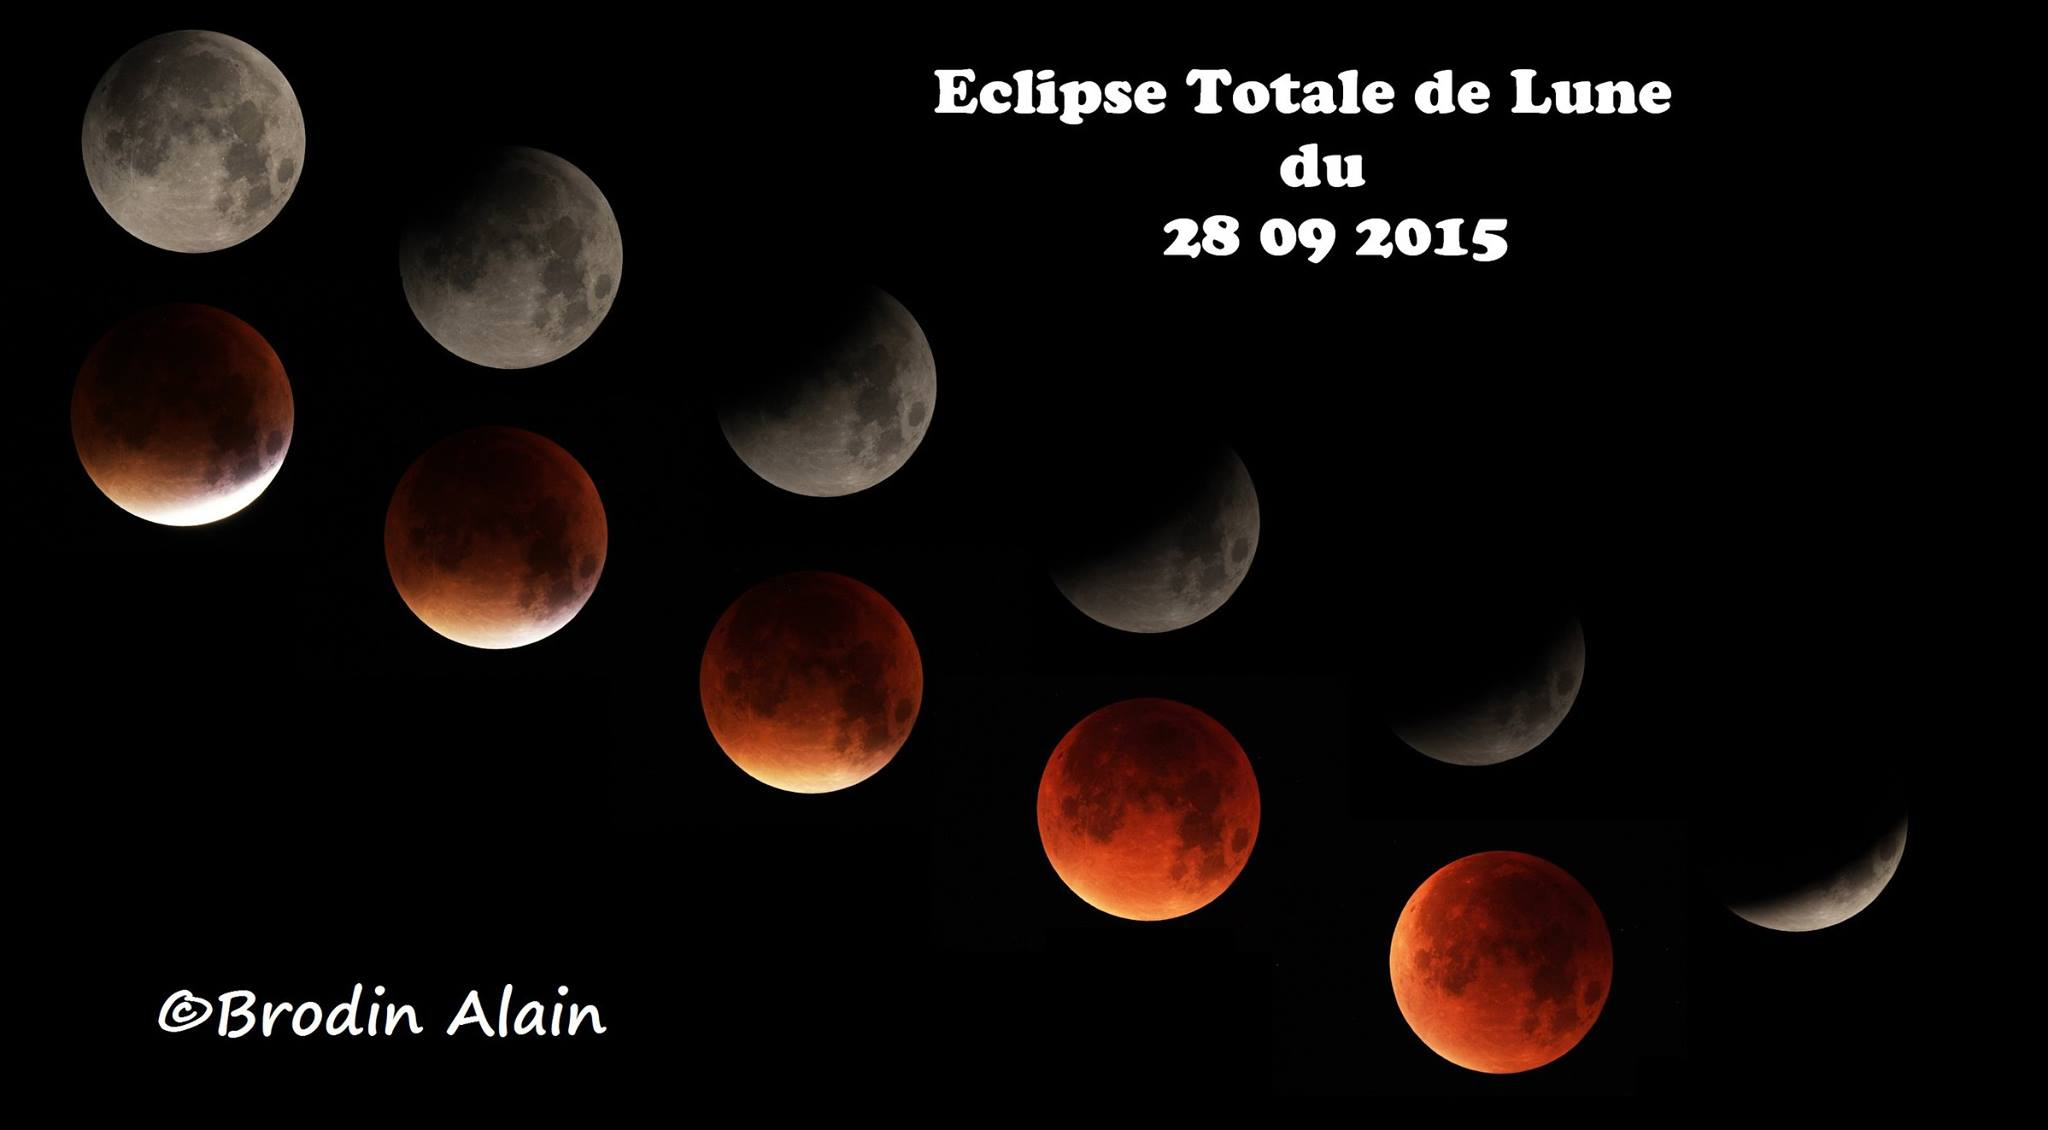 eclipse totale de lune du 28 09 2015